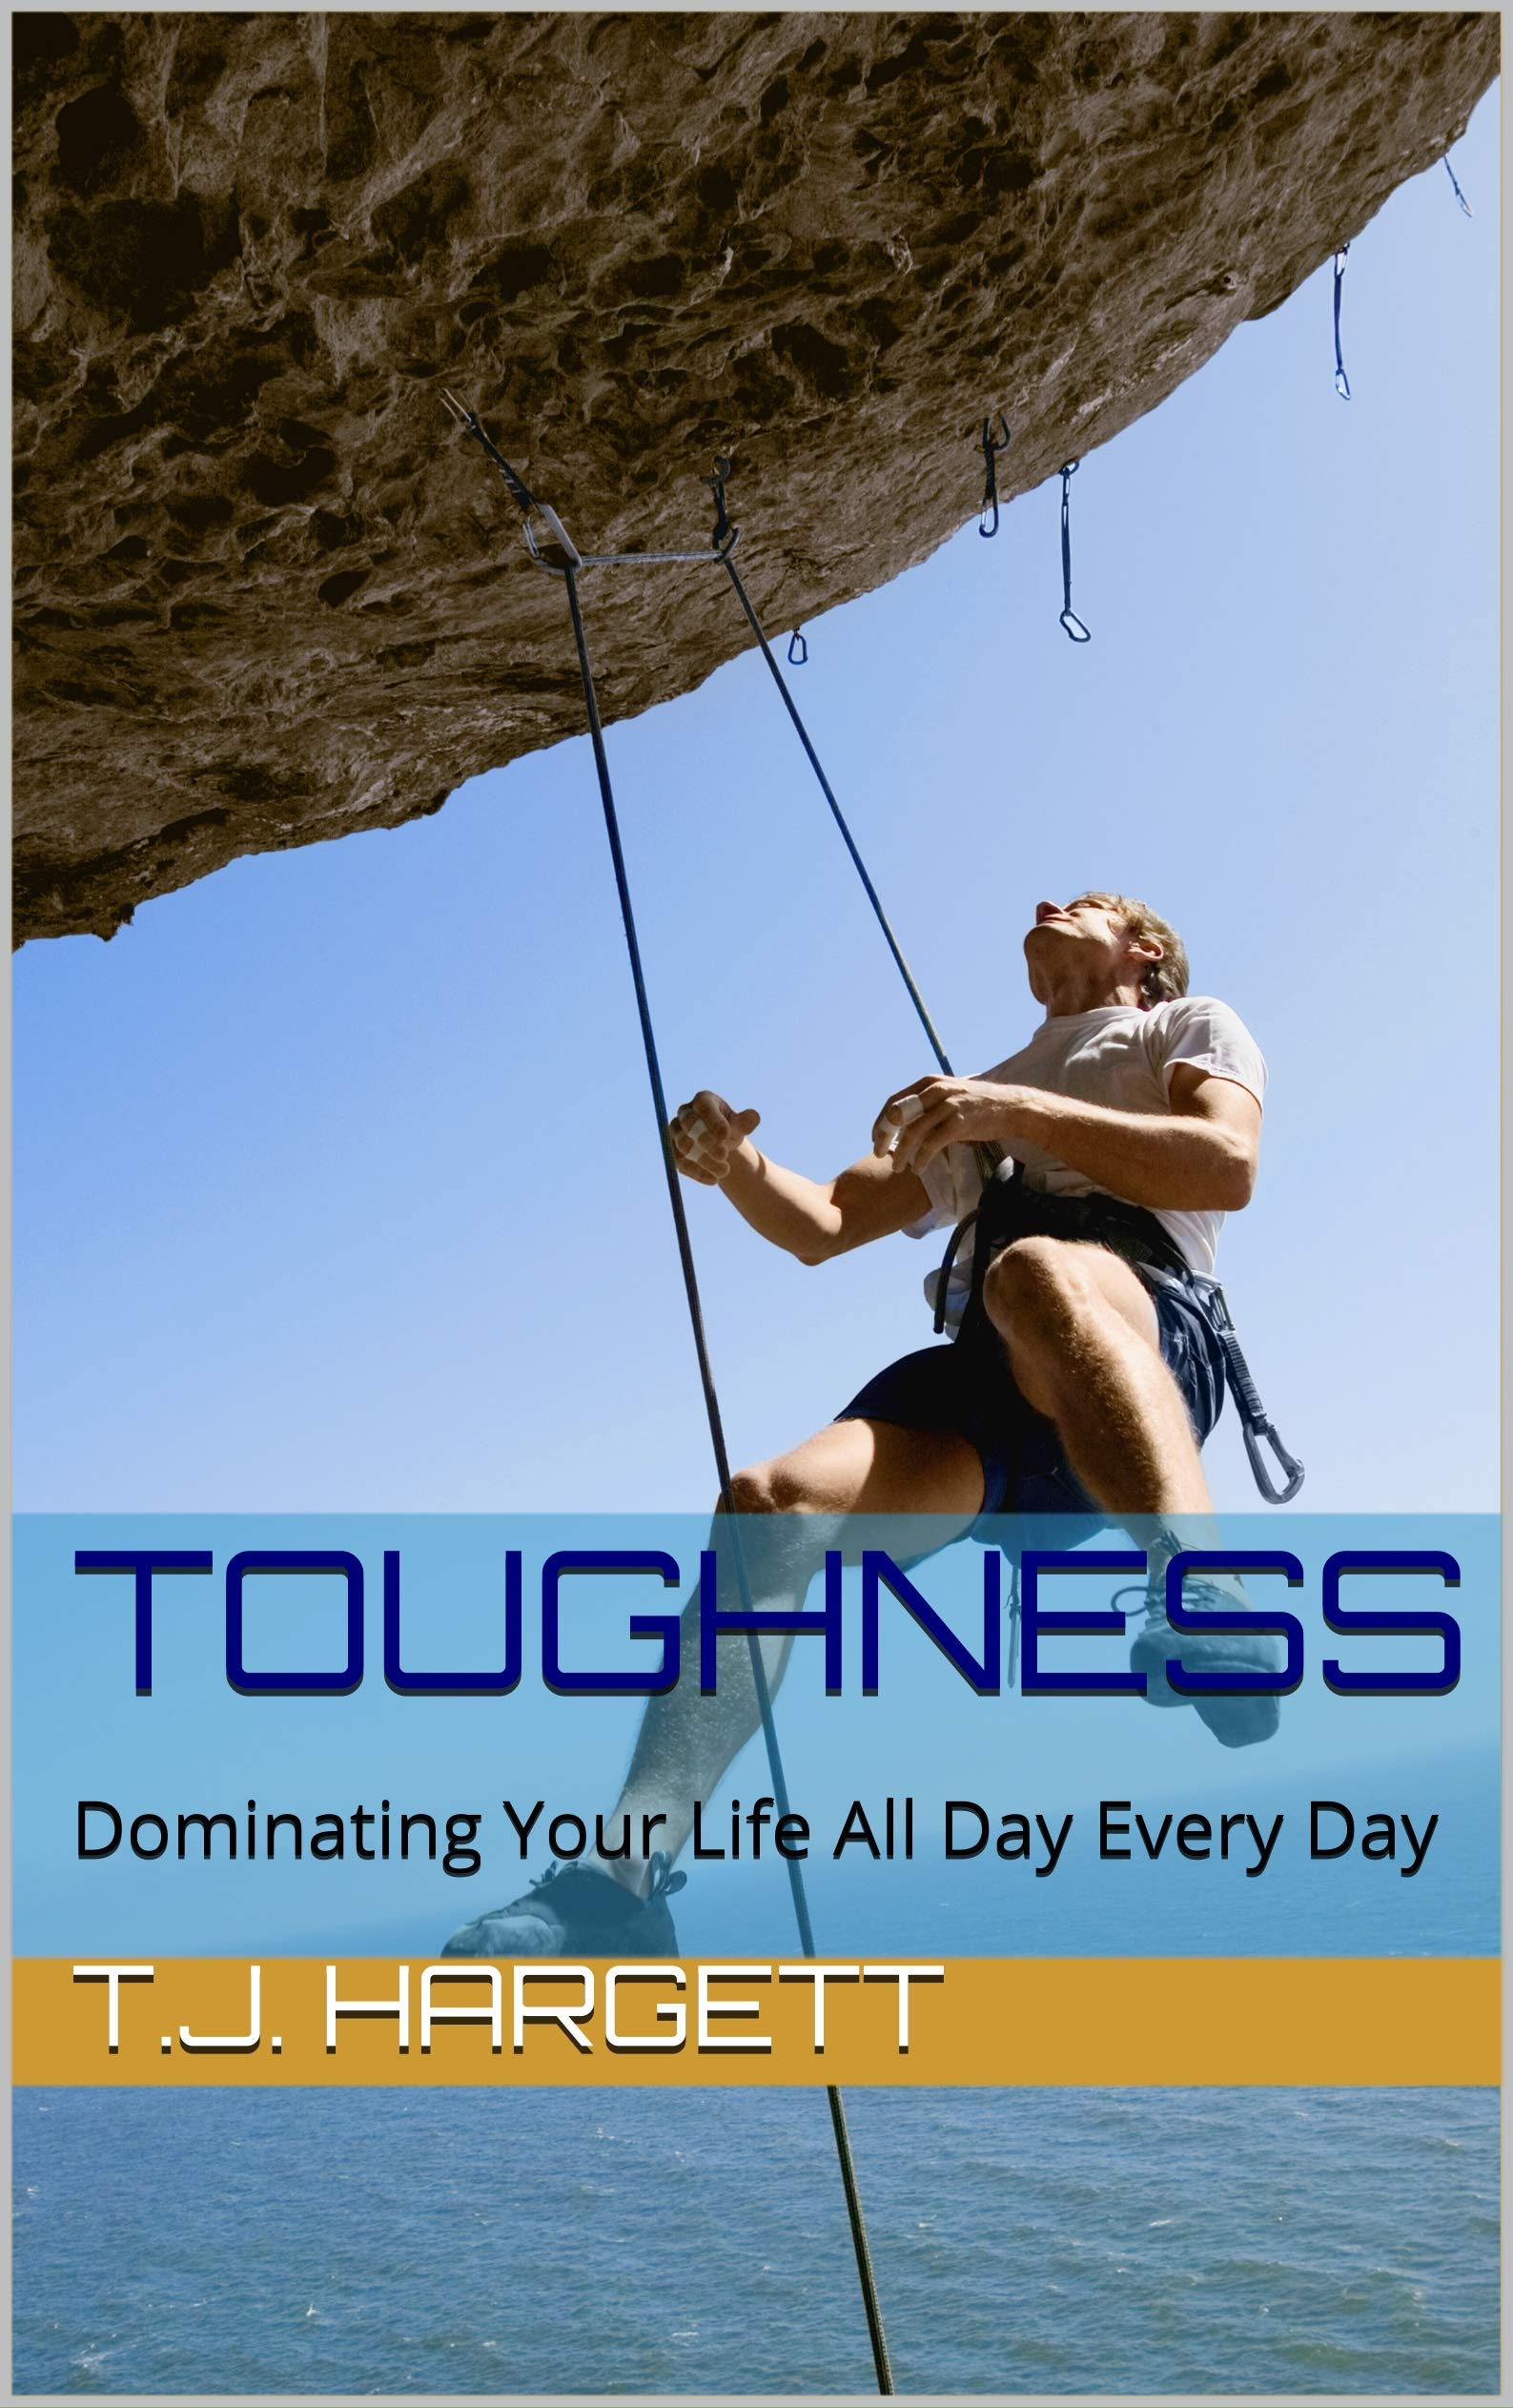 TOUGHNESS: Dominating Your Life All Day Every Day